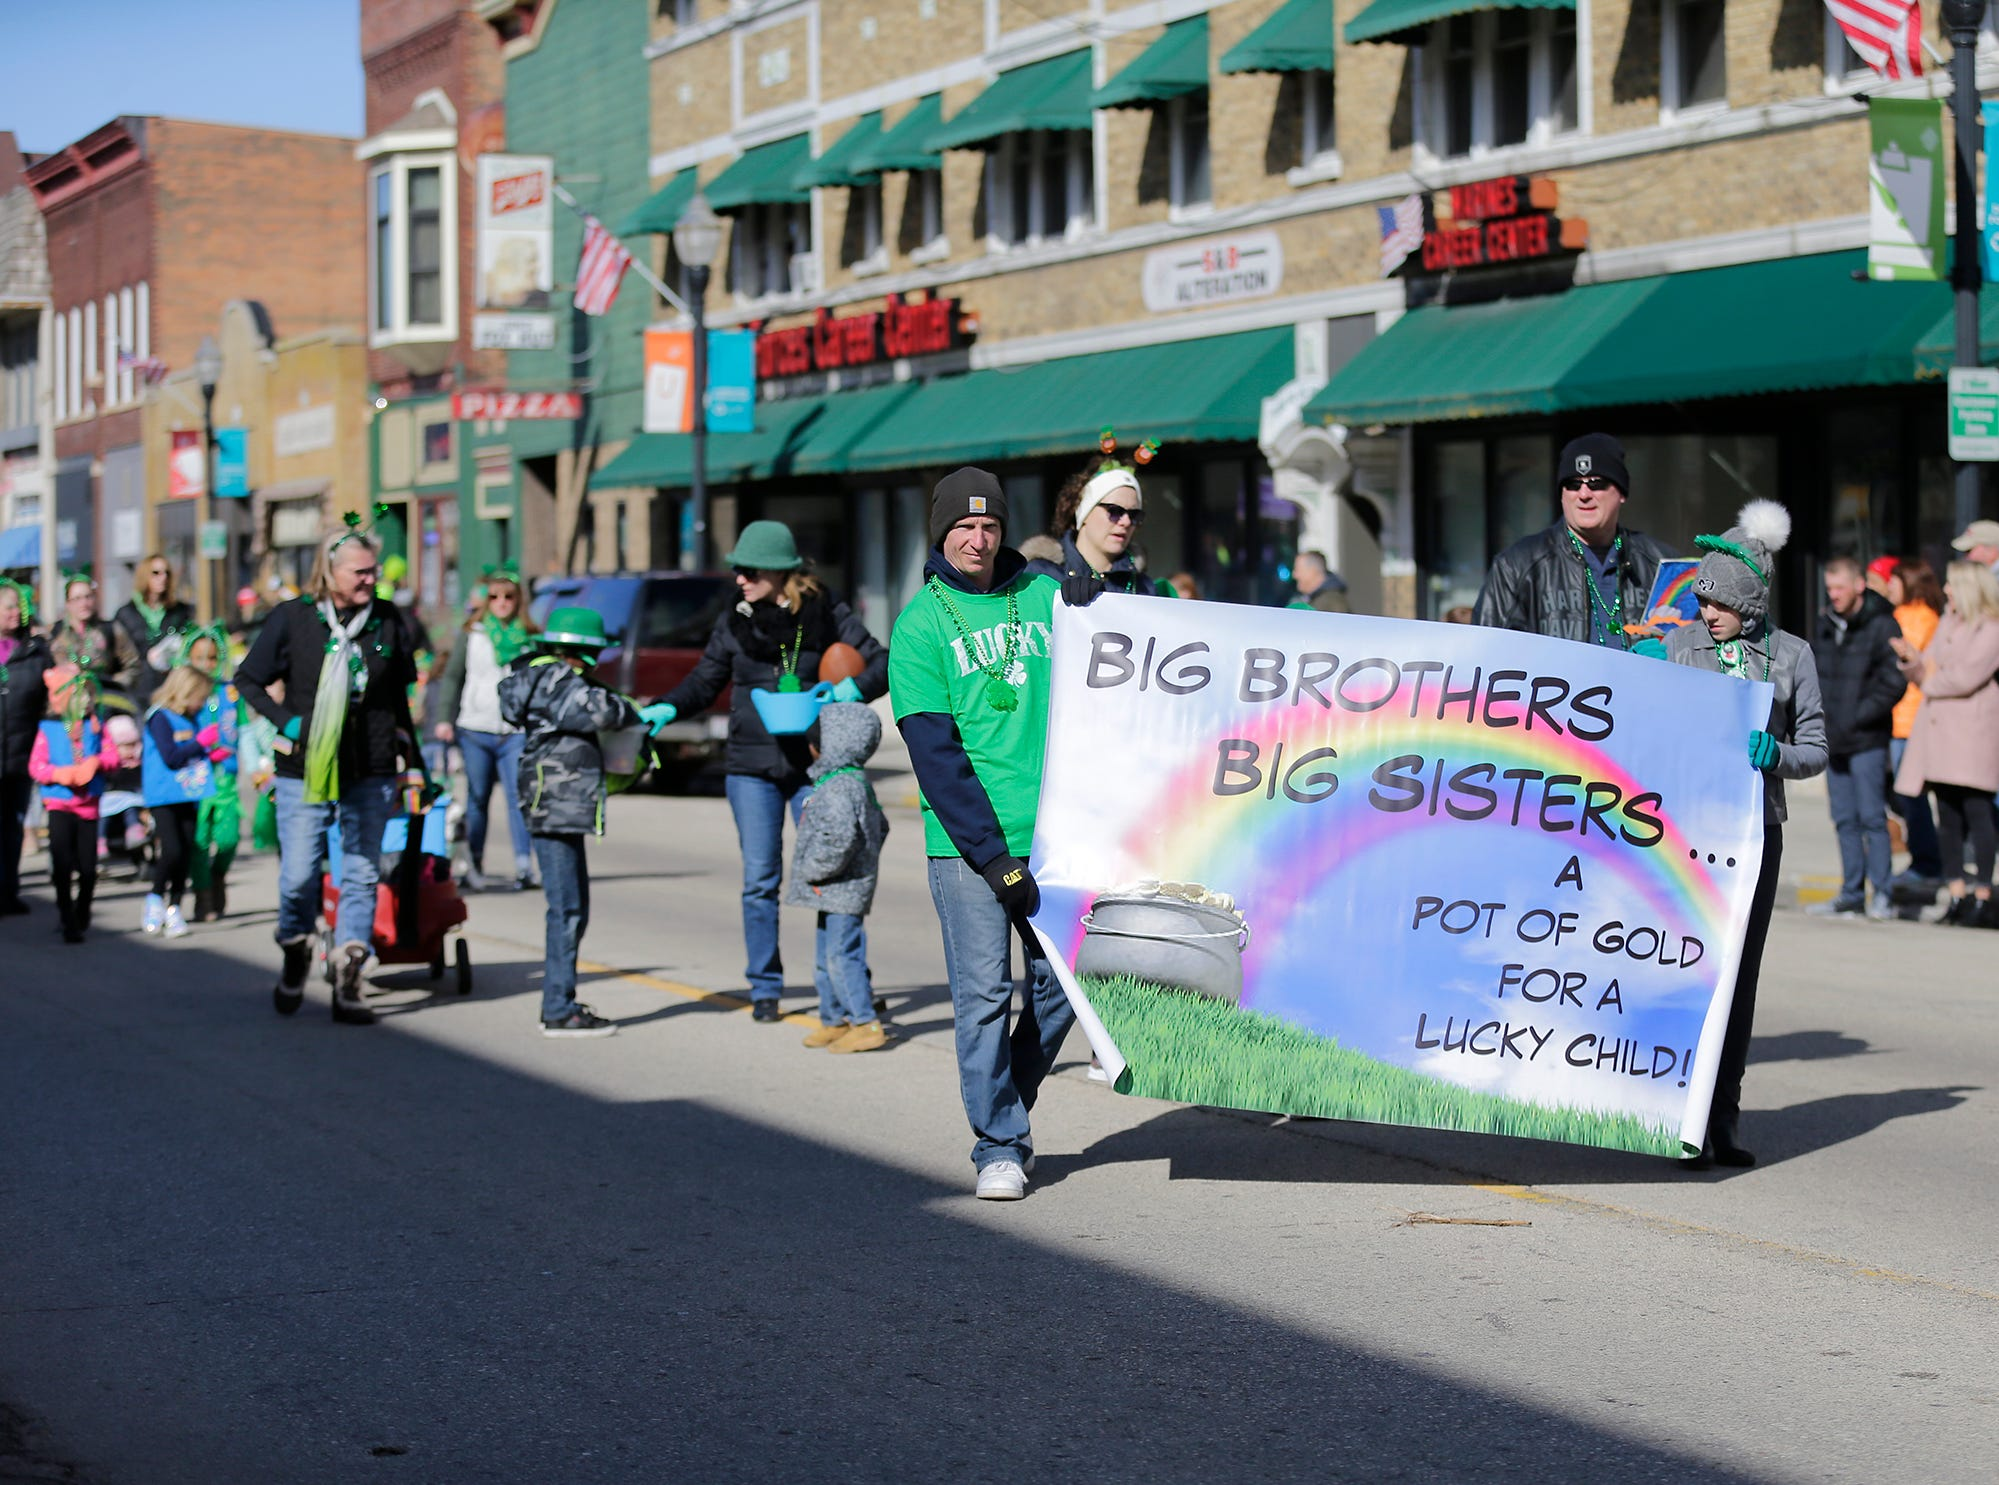 Big Brothers Big Sisters of Fond du Lac participated in the City of Fond du Lac St. Patrick's Day Parade Saturday, March 16, 2019 on Main Street in downtown Fond du Lac. Hundreds of people lined the street to watch over 50 parade participants. Doug Raflik/USA TODAY NETWORK-Wisconsin